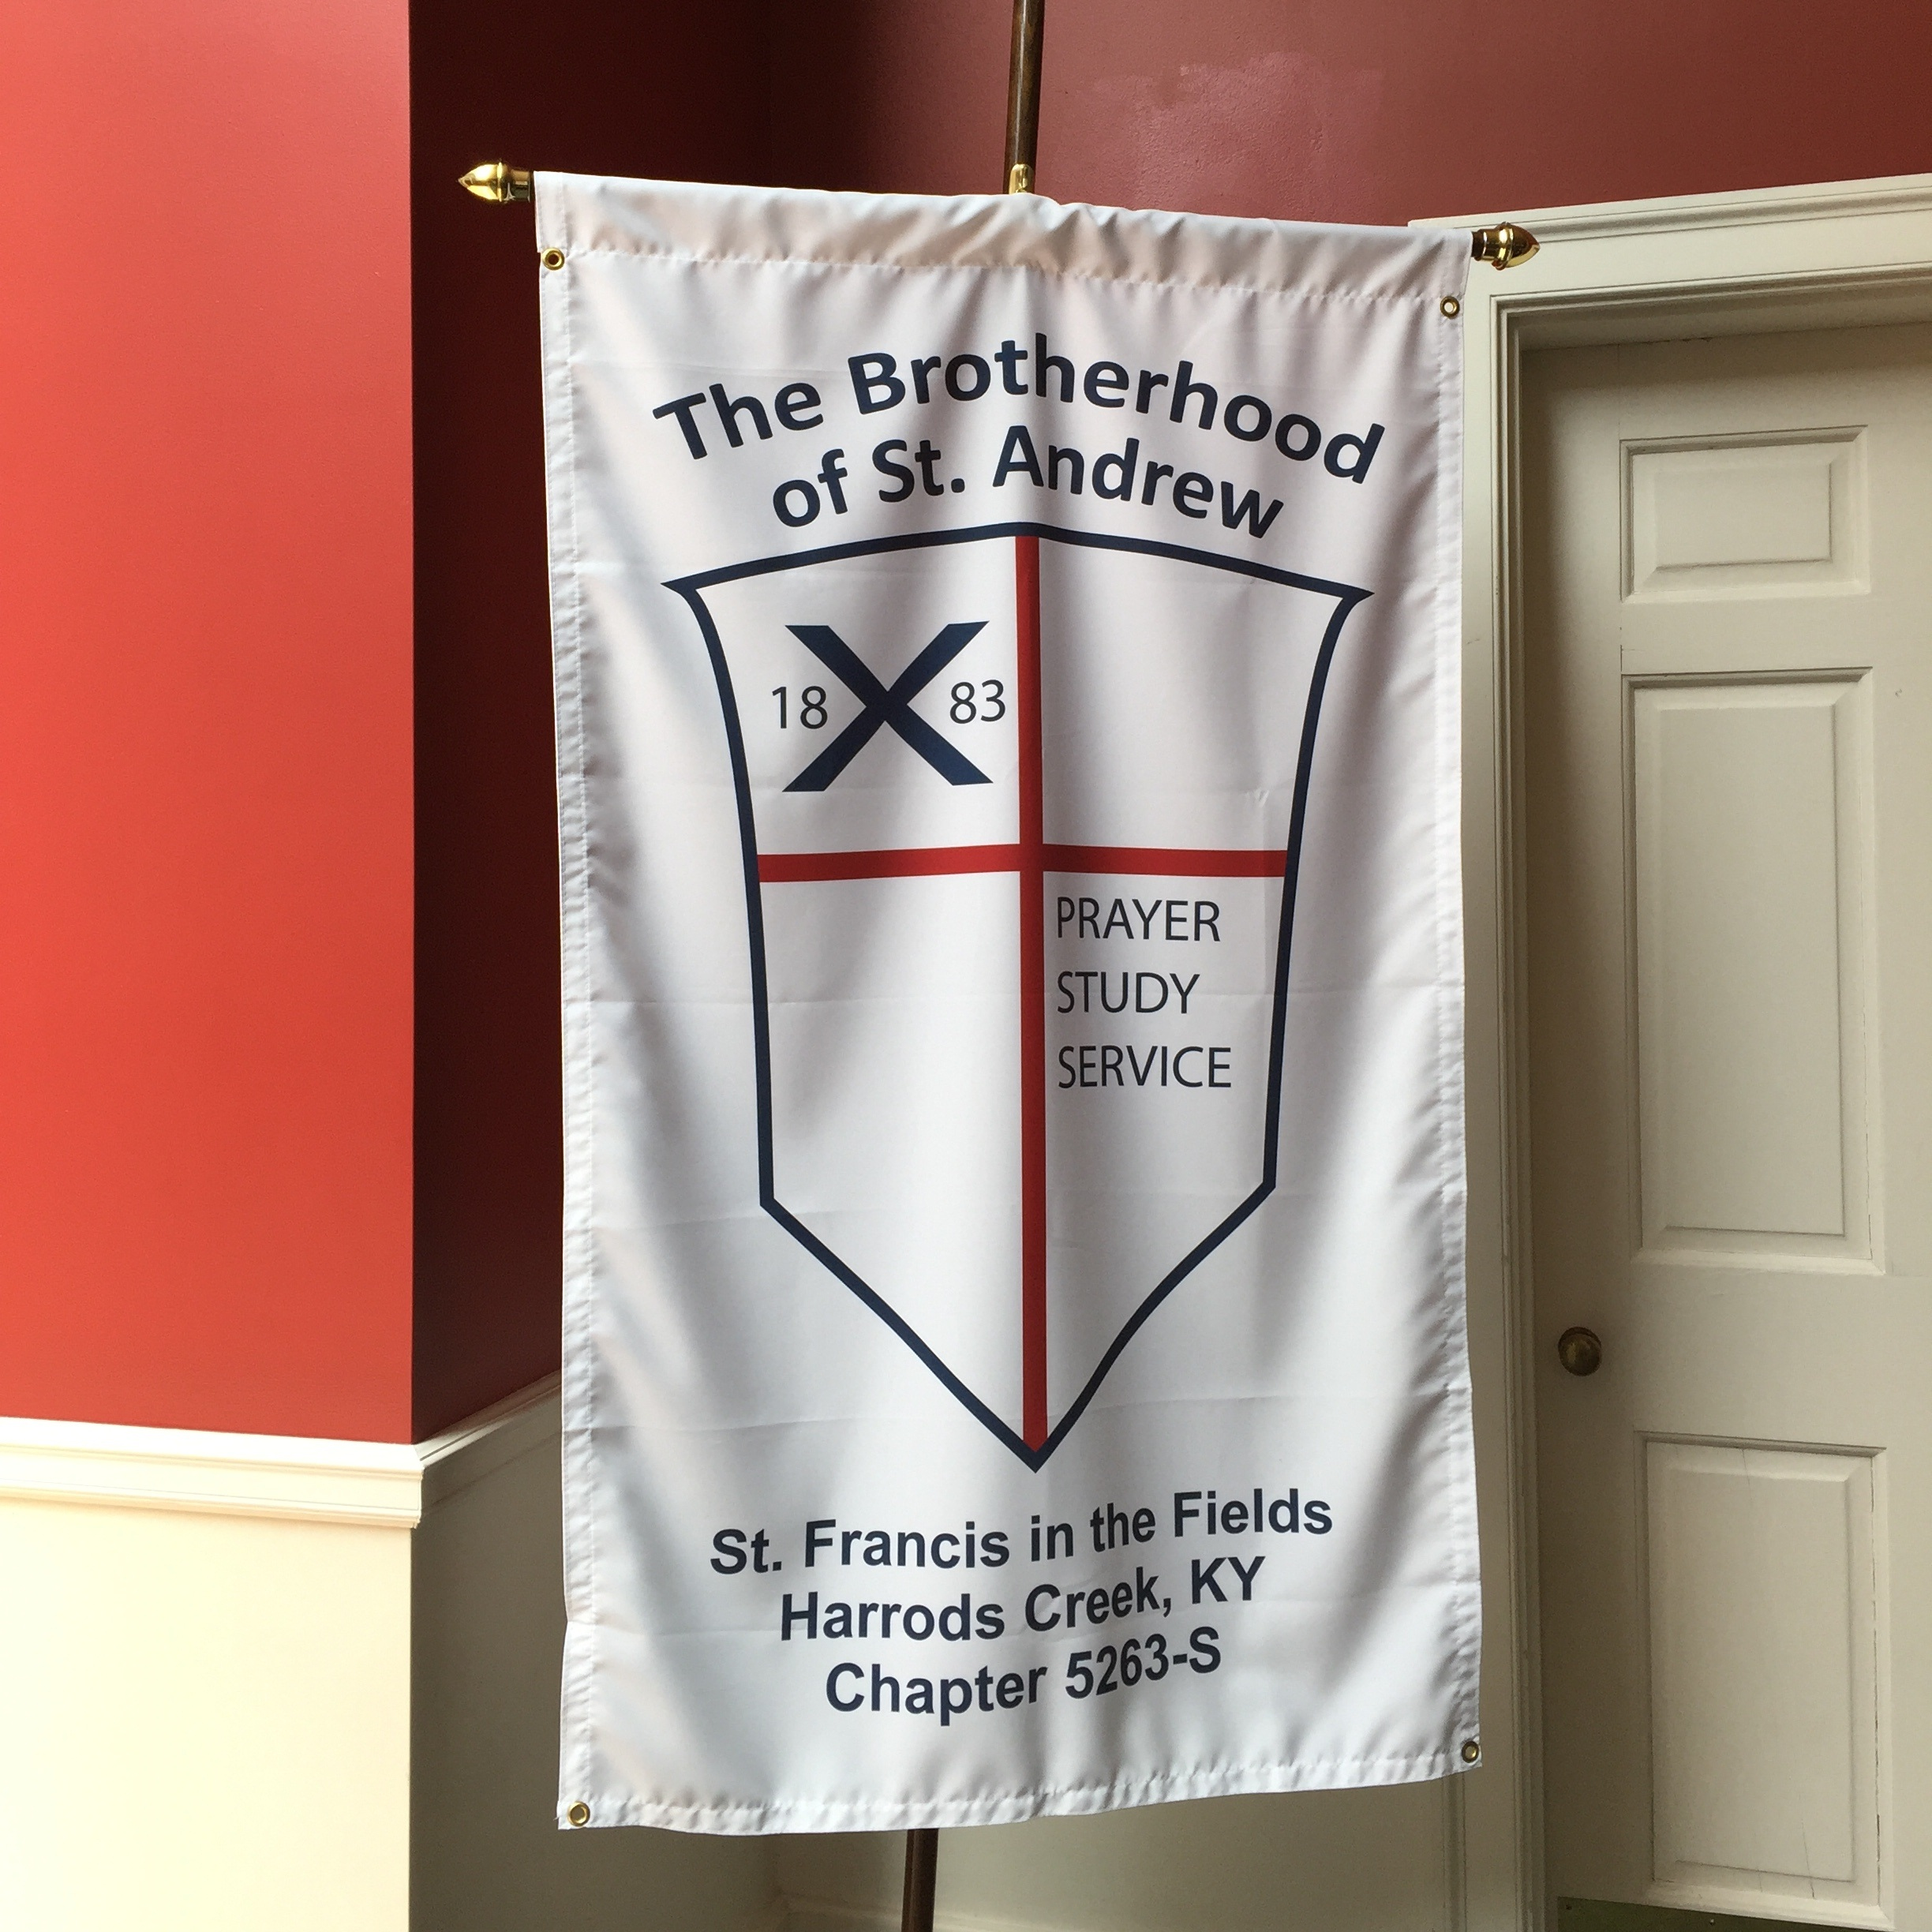 Brotherhood of St. Andrew sign